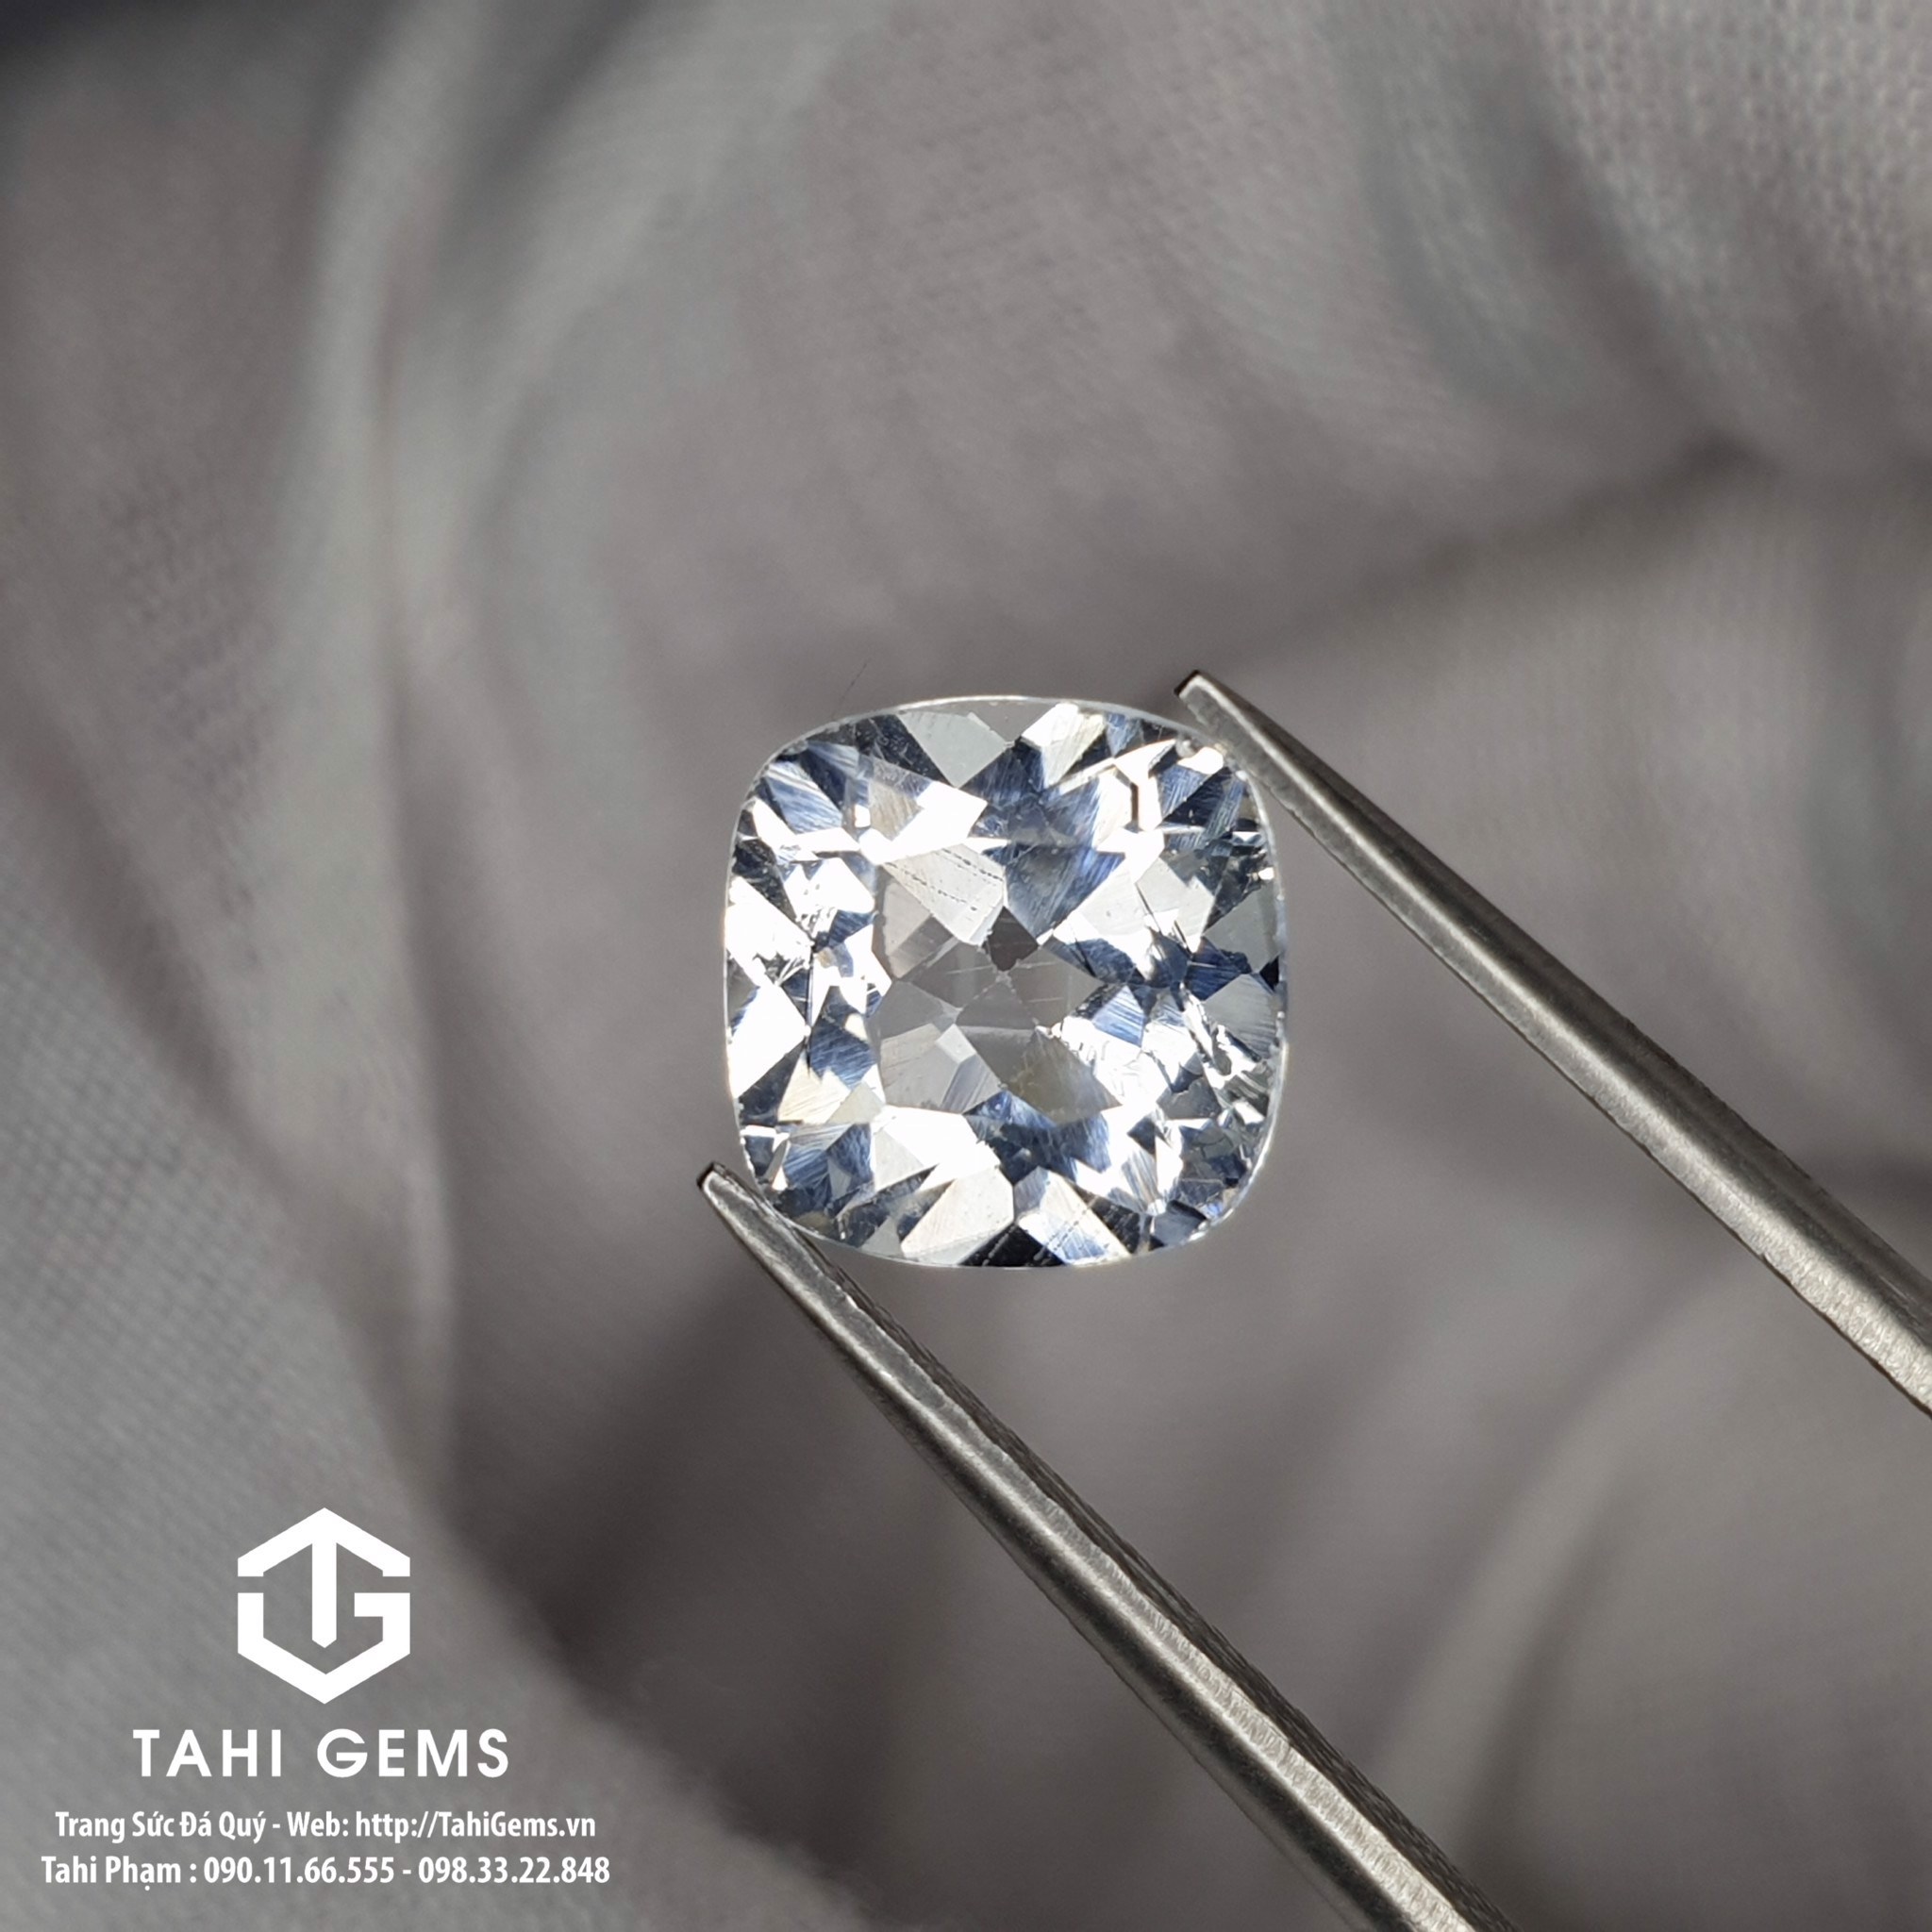 TAHI 8805 NATURAL WHITE TOPAZ GEMSTONES